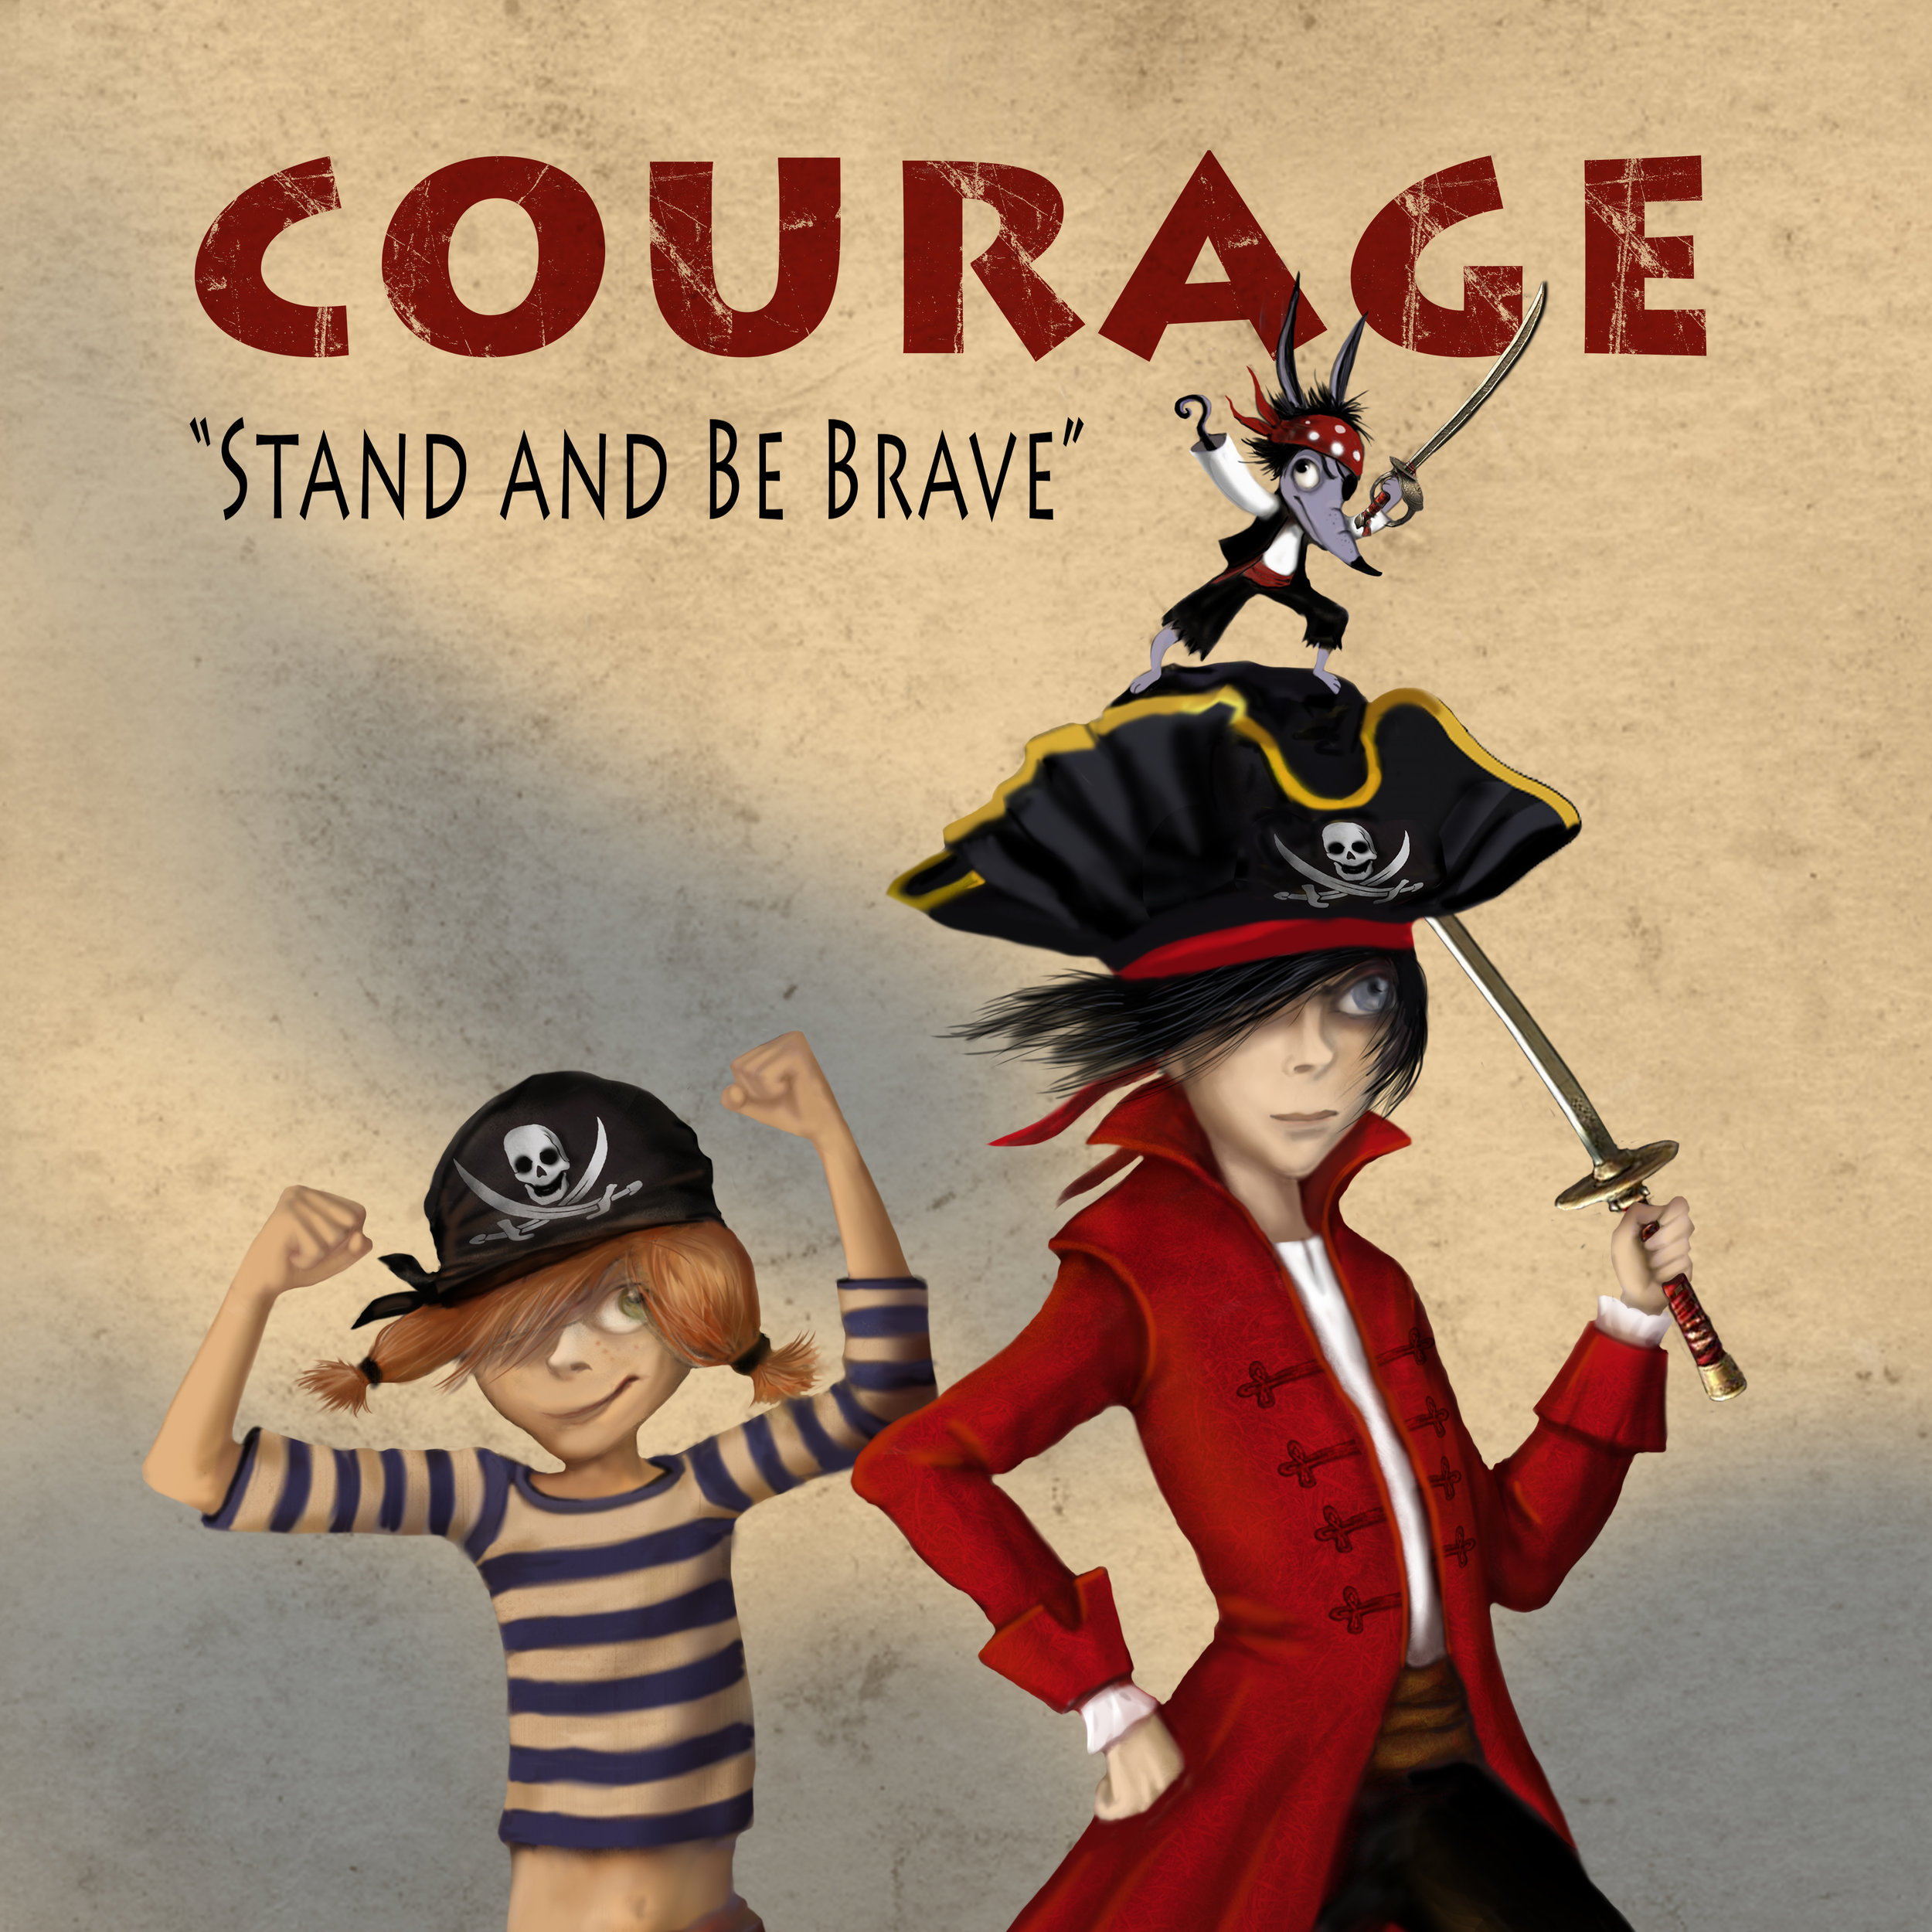 """Courage"" by Danibelle, picture book cover, 2017"